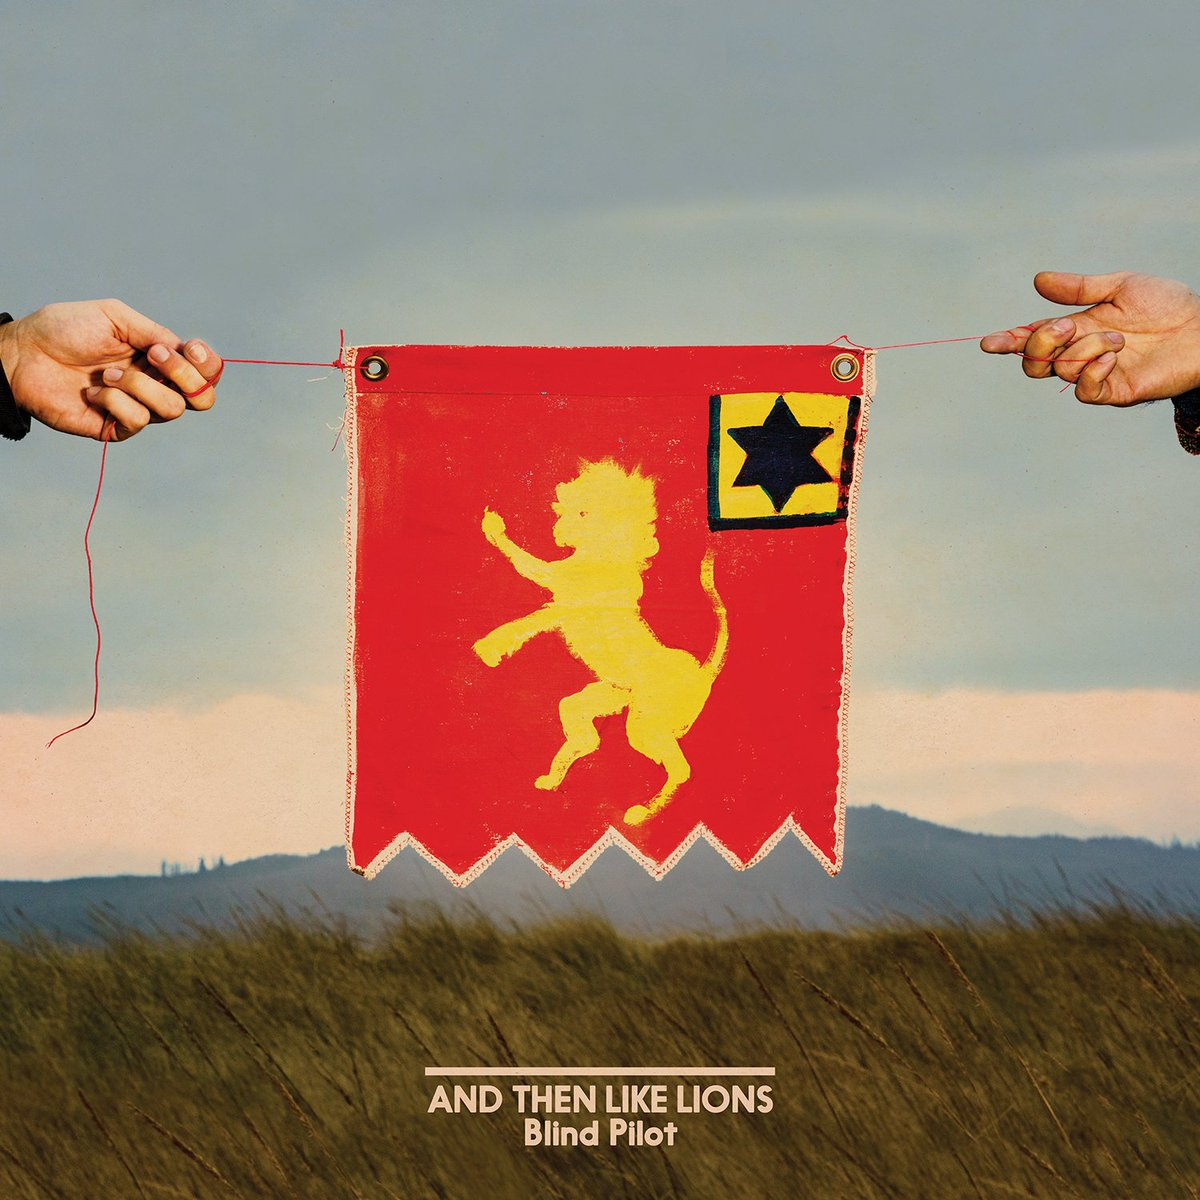 Our new album, And Then Like Lions, comes out August 12 on @ATORecords! Pre-order now: https://t.co/VOnkOdLG2N https://t.co/lQvvseCnLB